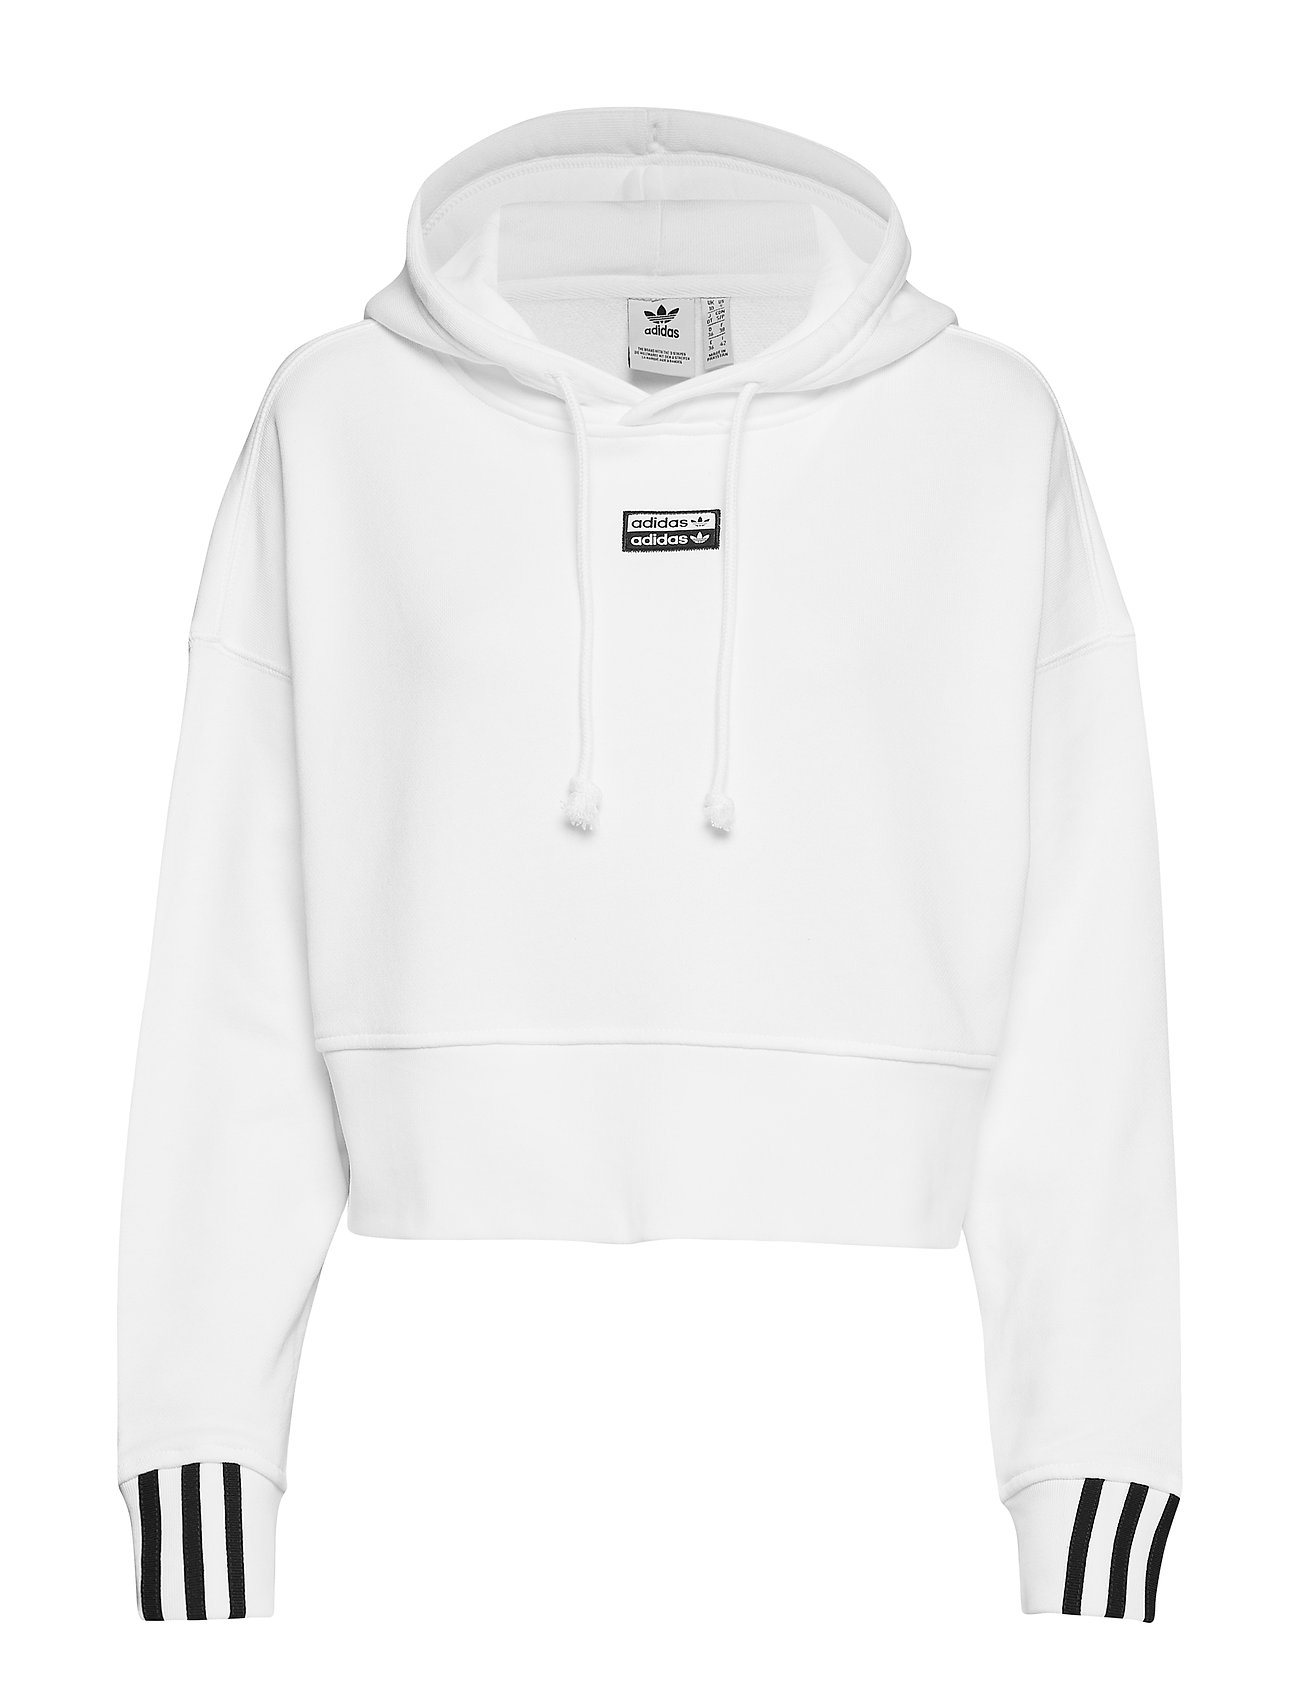 adidas Originals VOCAL CROP HOOD - WHITE